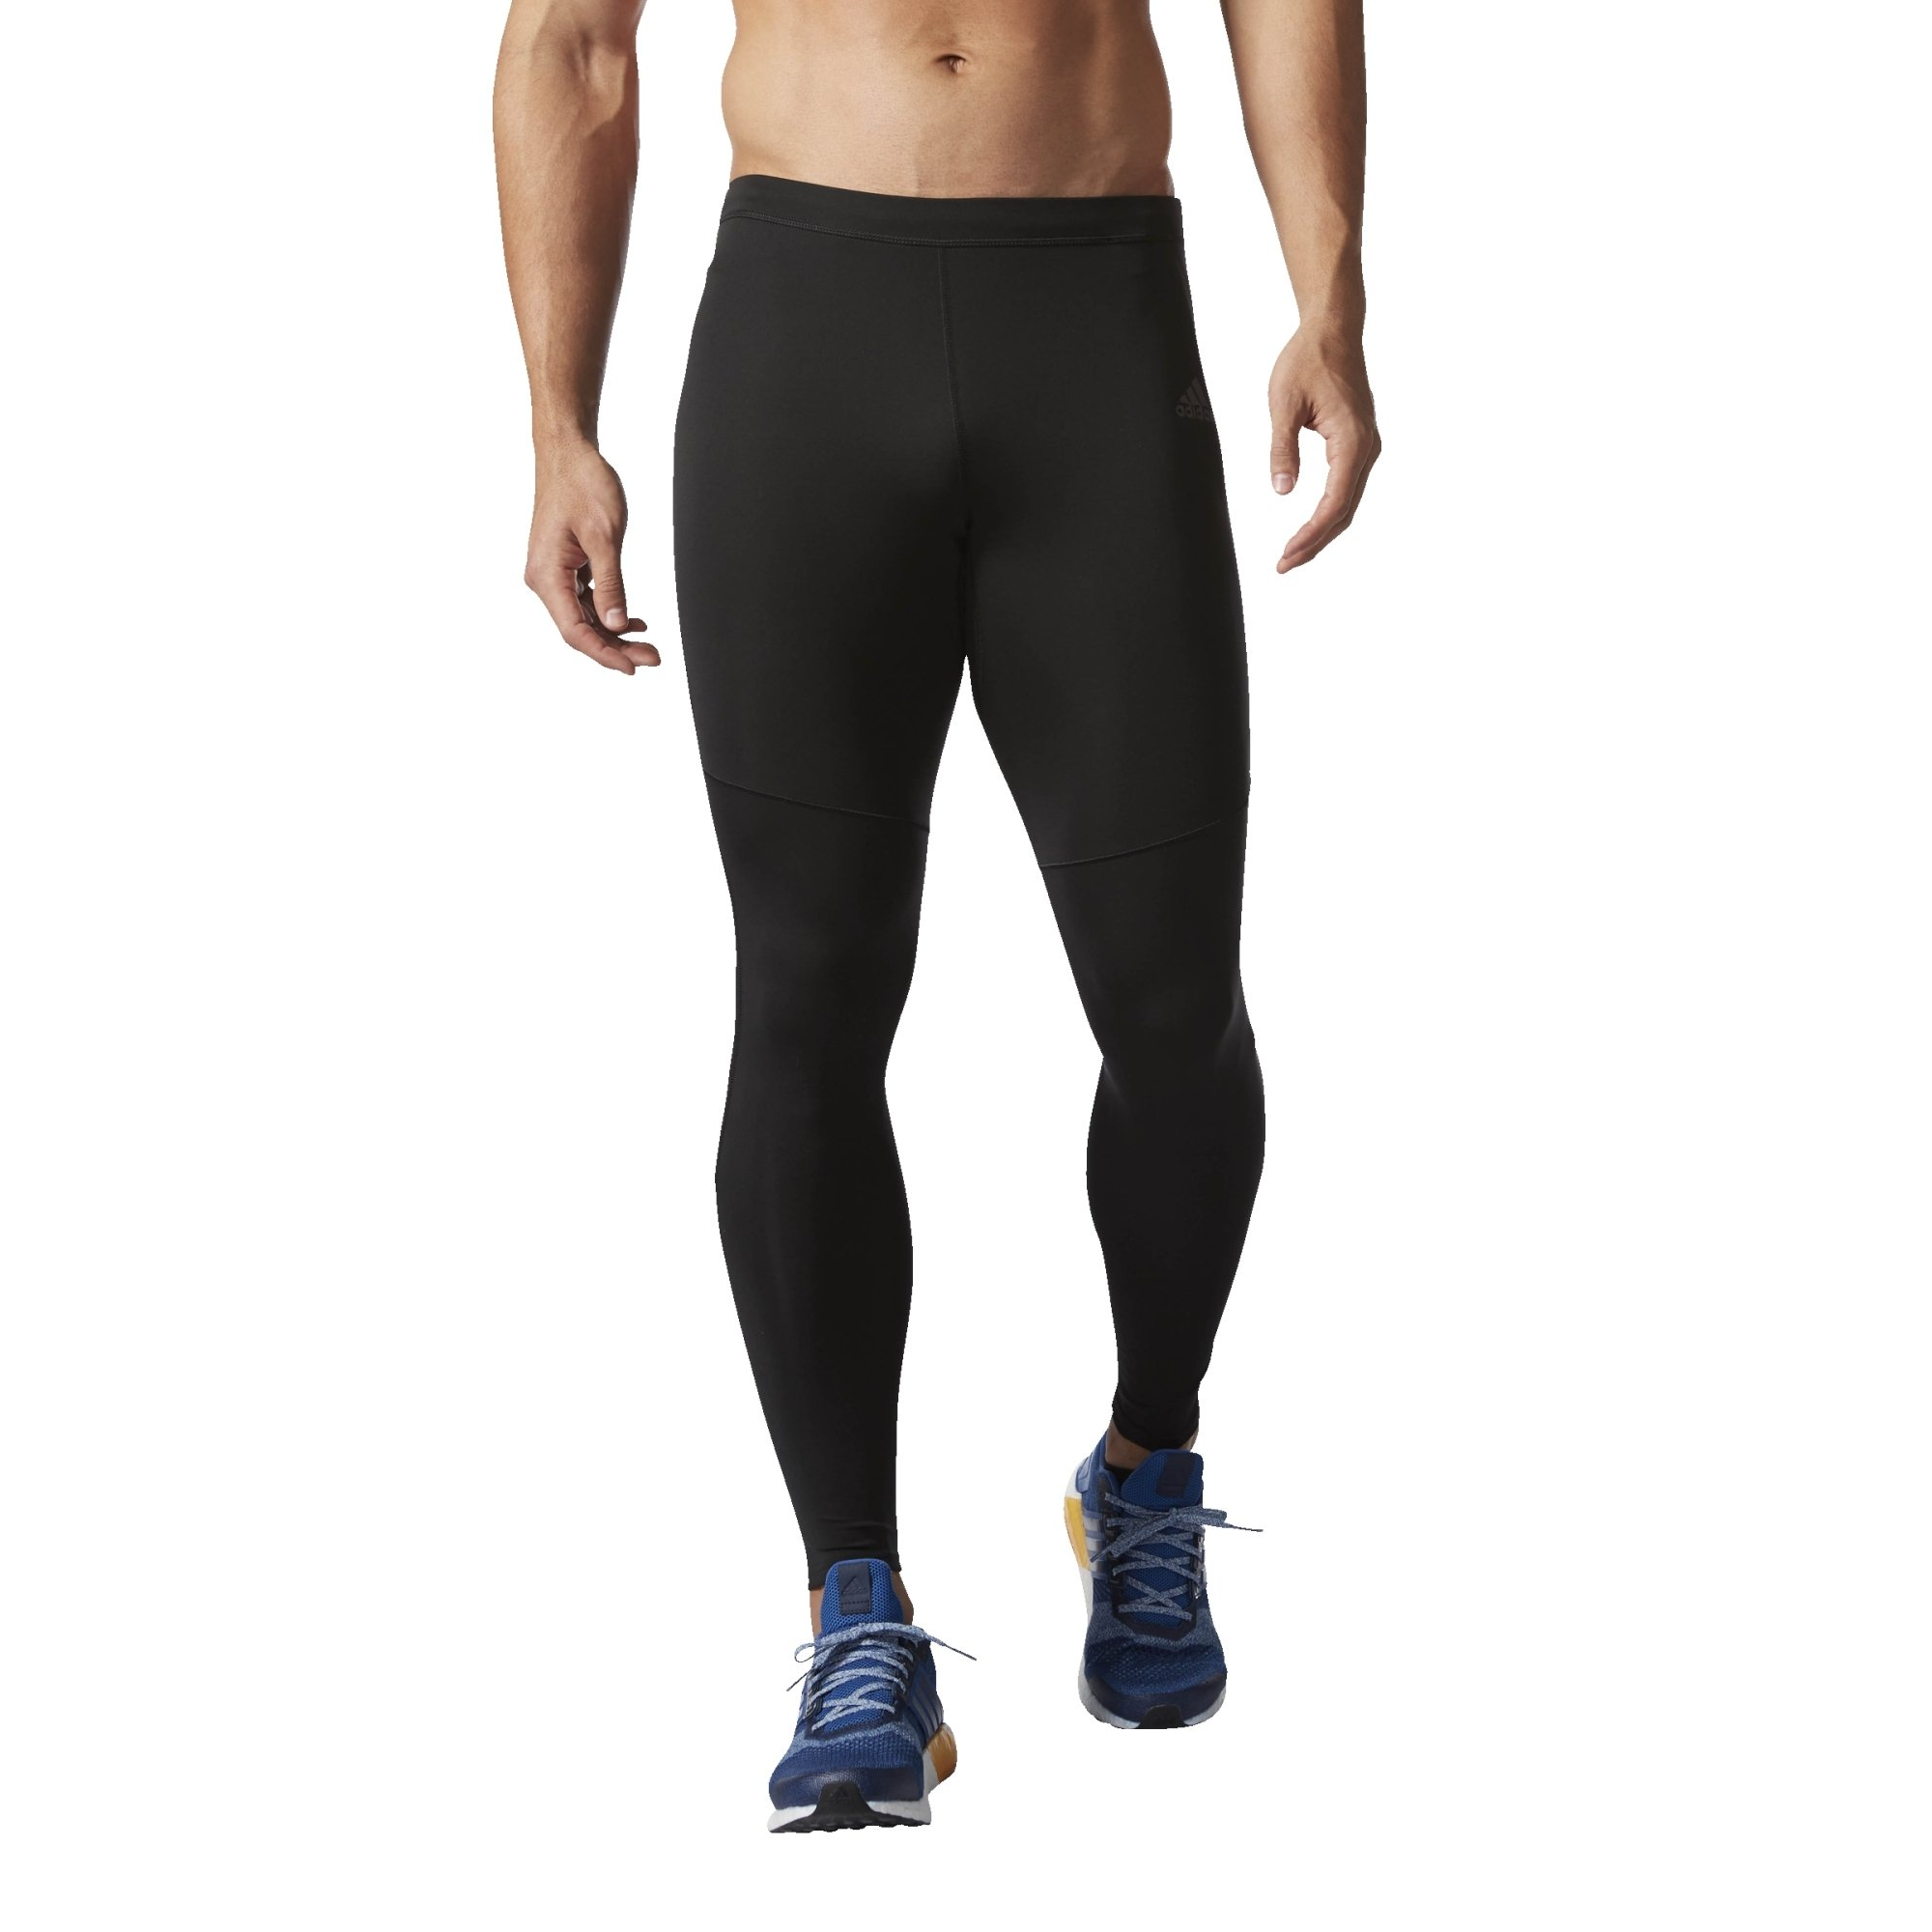 adidas Men's Running Response Long Tights, Black, Large by adidas (Image #1)